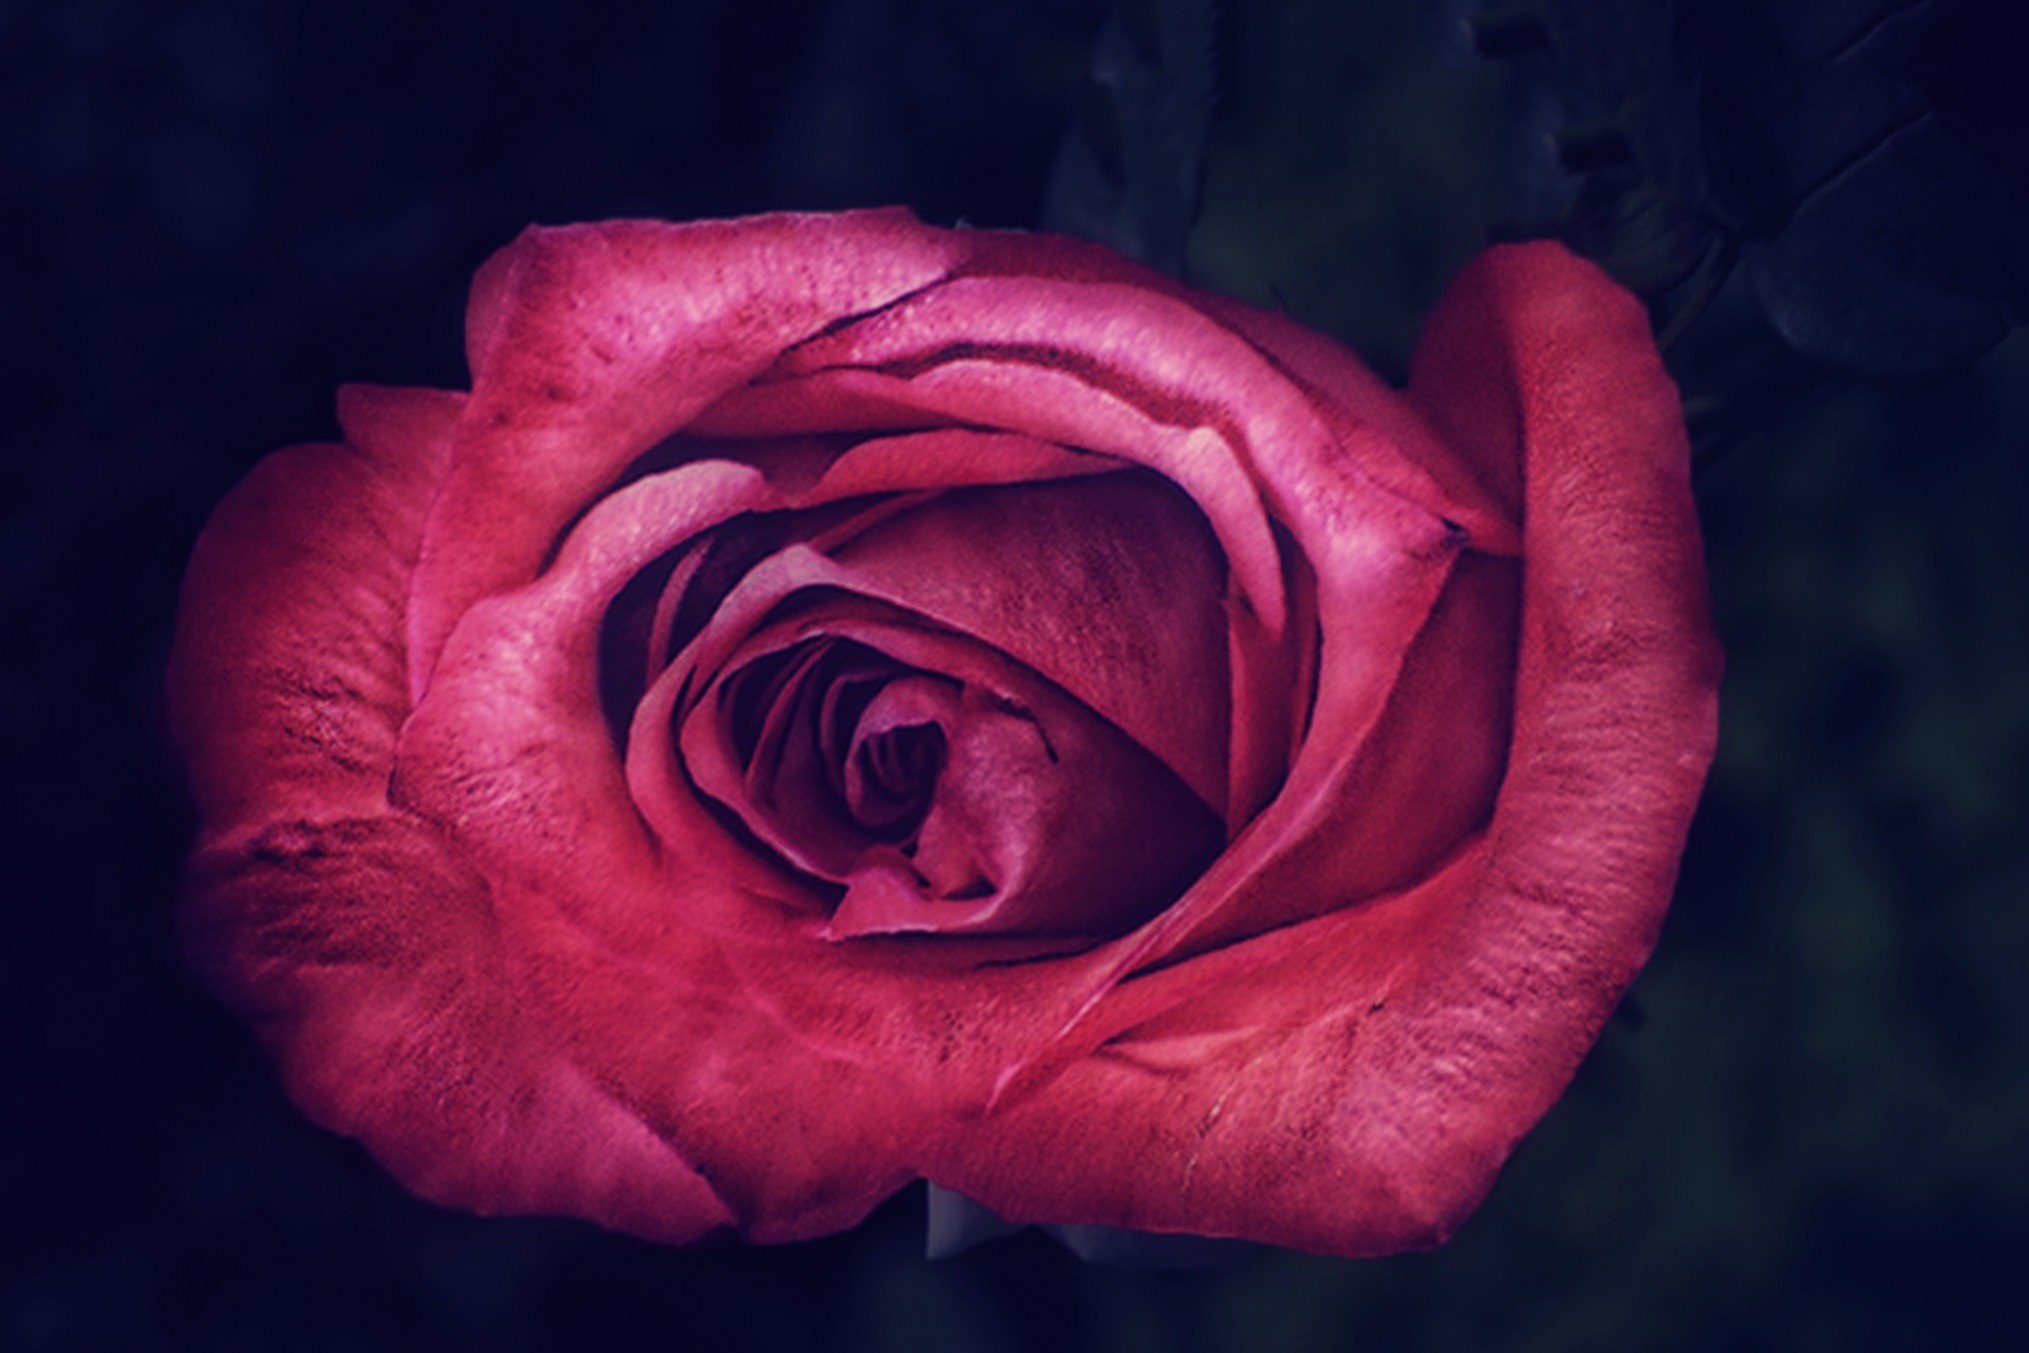 Nature 170-001 - Just a Rose by Tony Guzman